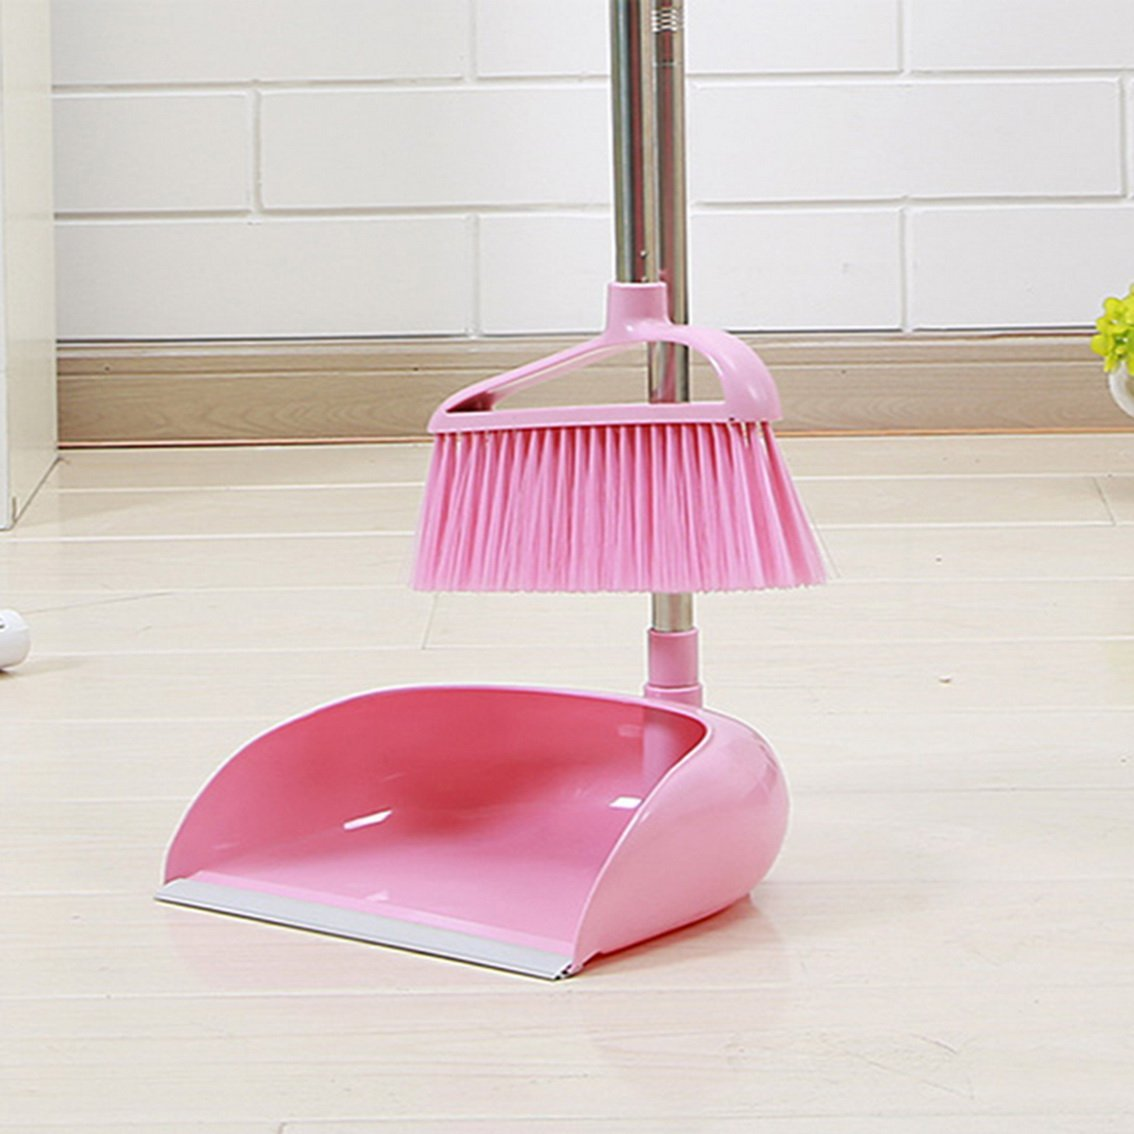 fengg2030shann Fur broom shovel garbage broom dustpan sweeping package of household plastic bucket broom dustpan summarized Kei. Broom broom dustpan broom dustpan garbage shovel dustpan